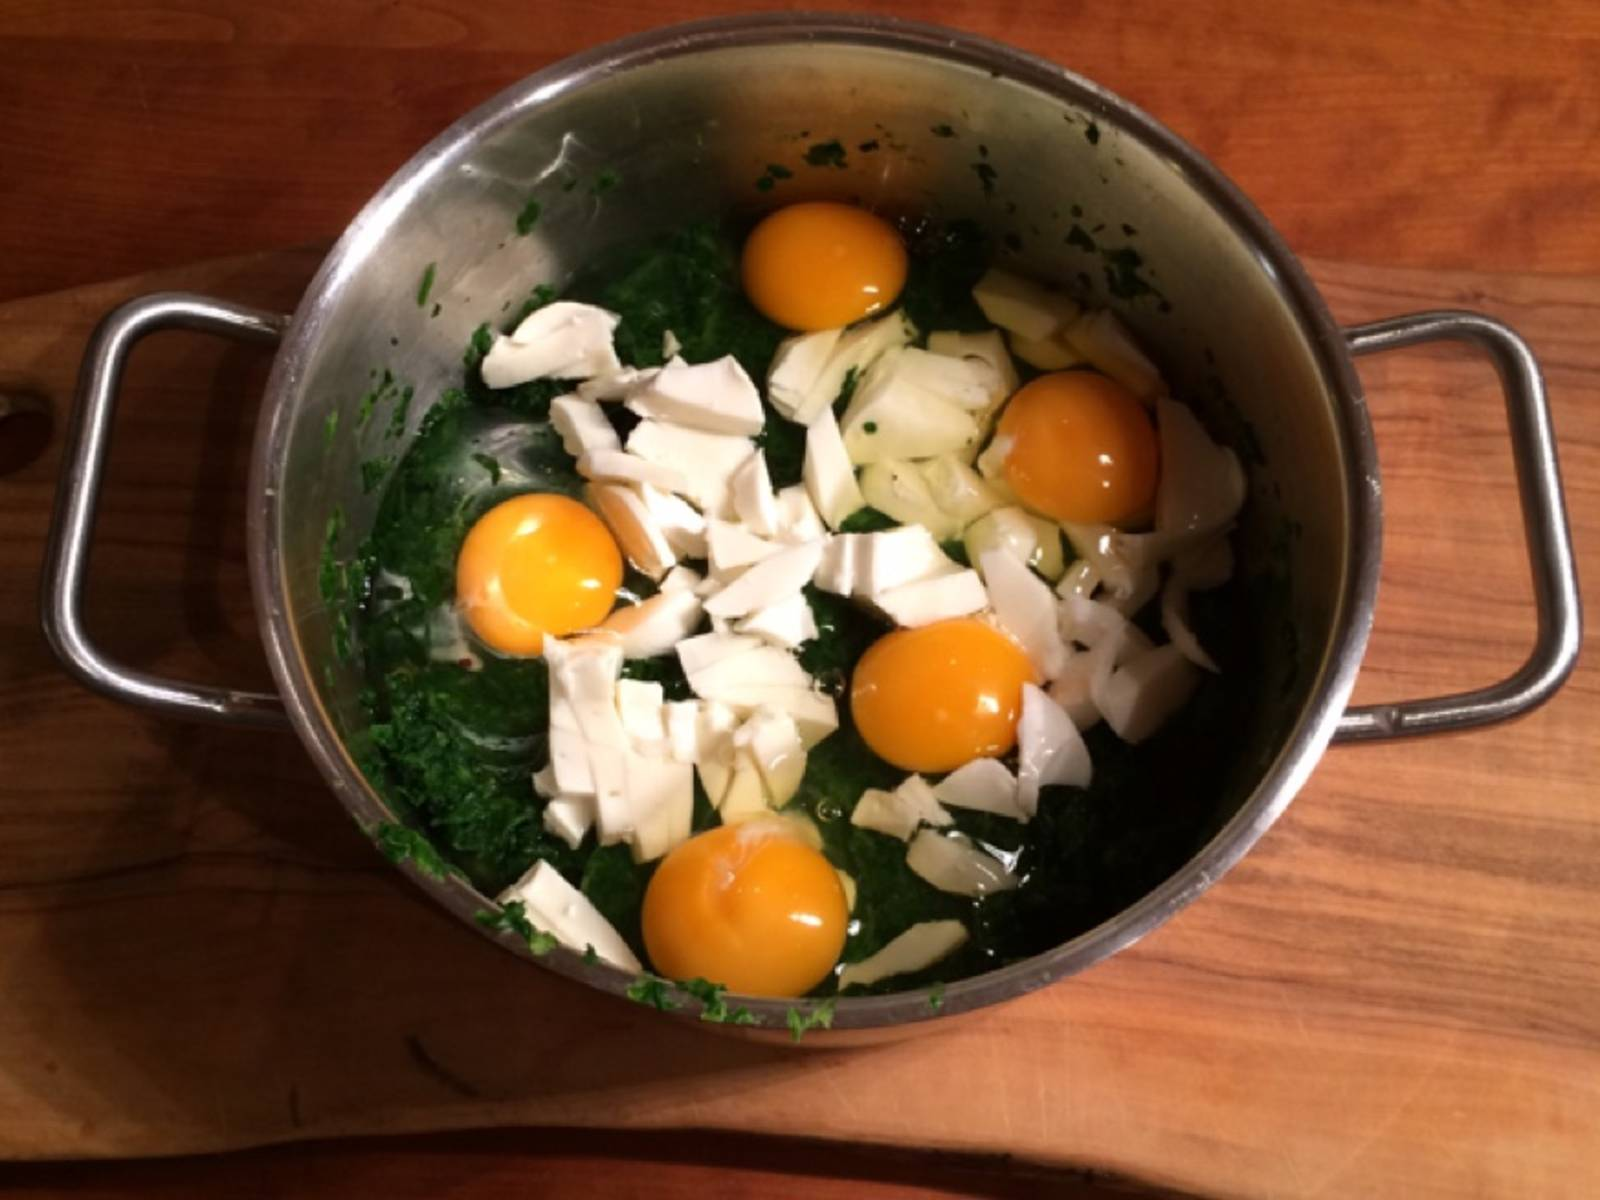 Preheat the oven to 200°C/390°F. Heat the spinach in a pot. In the meantime, finely chop the mozzarella. If the spinach is very watery, drain in a sieve. Add eggs and mozzarella to the spinach, then mix well to combine.